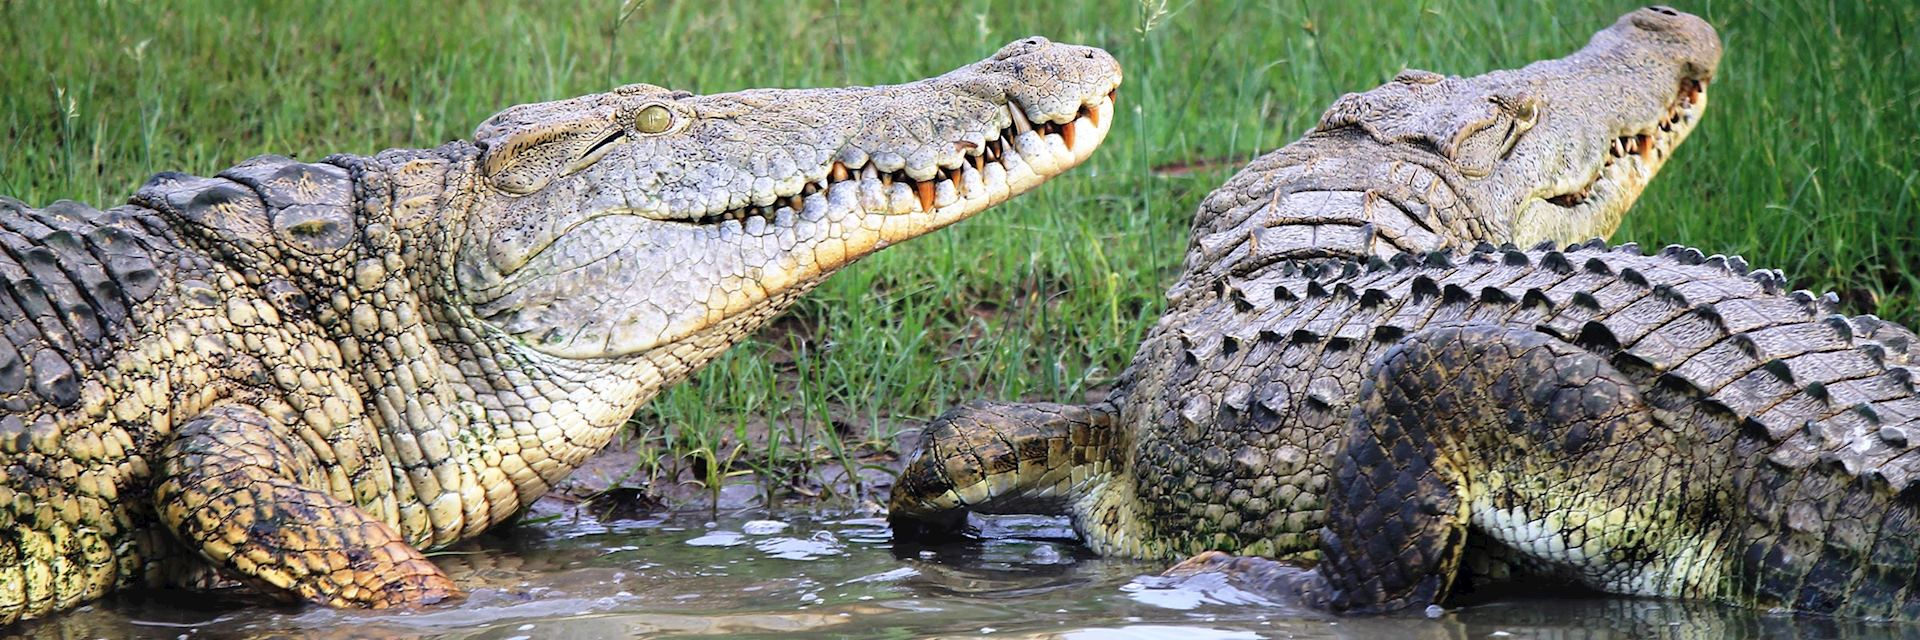 Crocodiles in the Selous Game Reserve